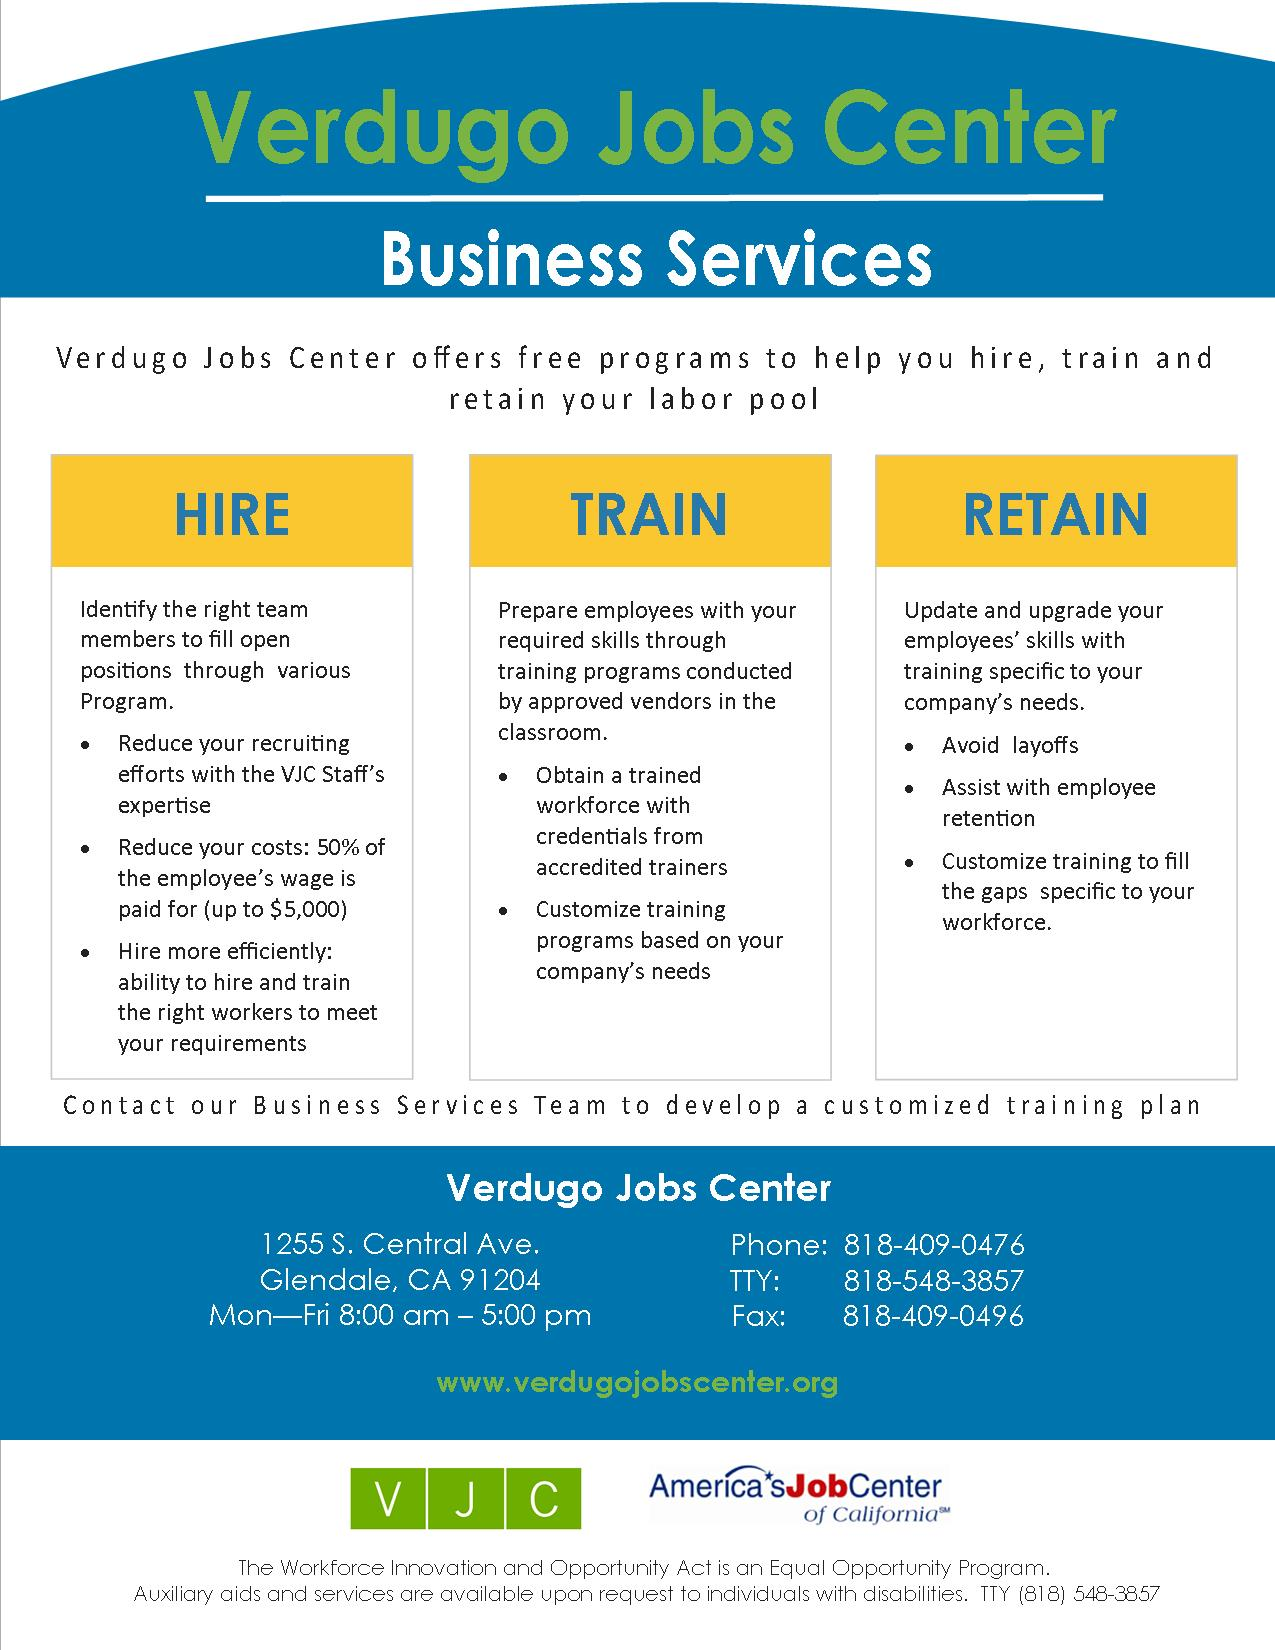 VJC Business Flyer_Hire_Train_Retain new logo